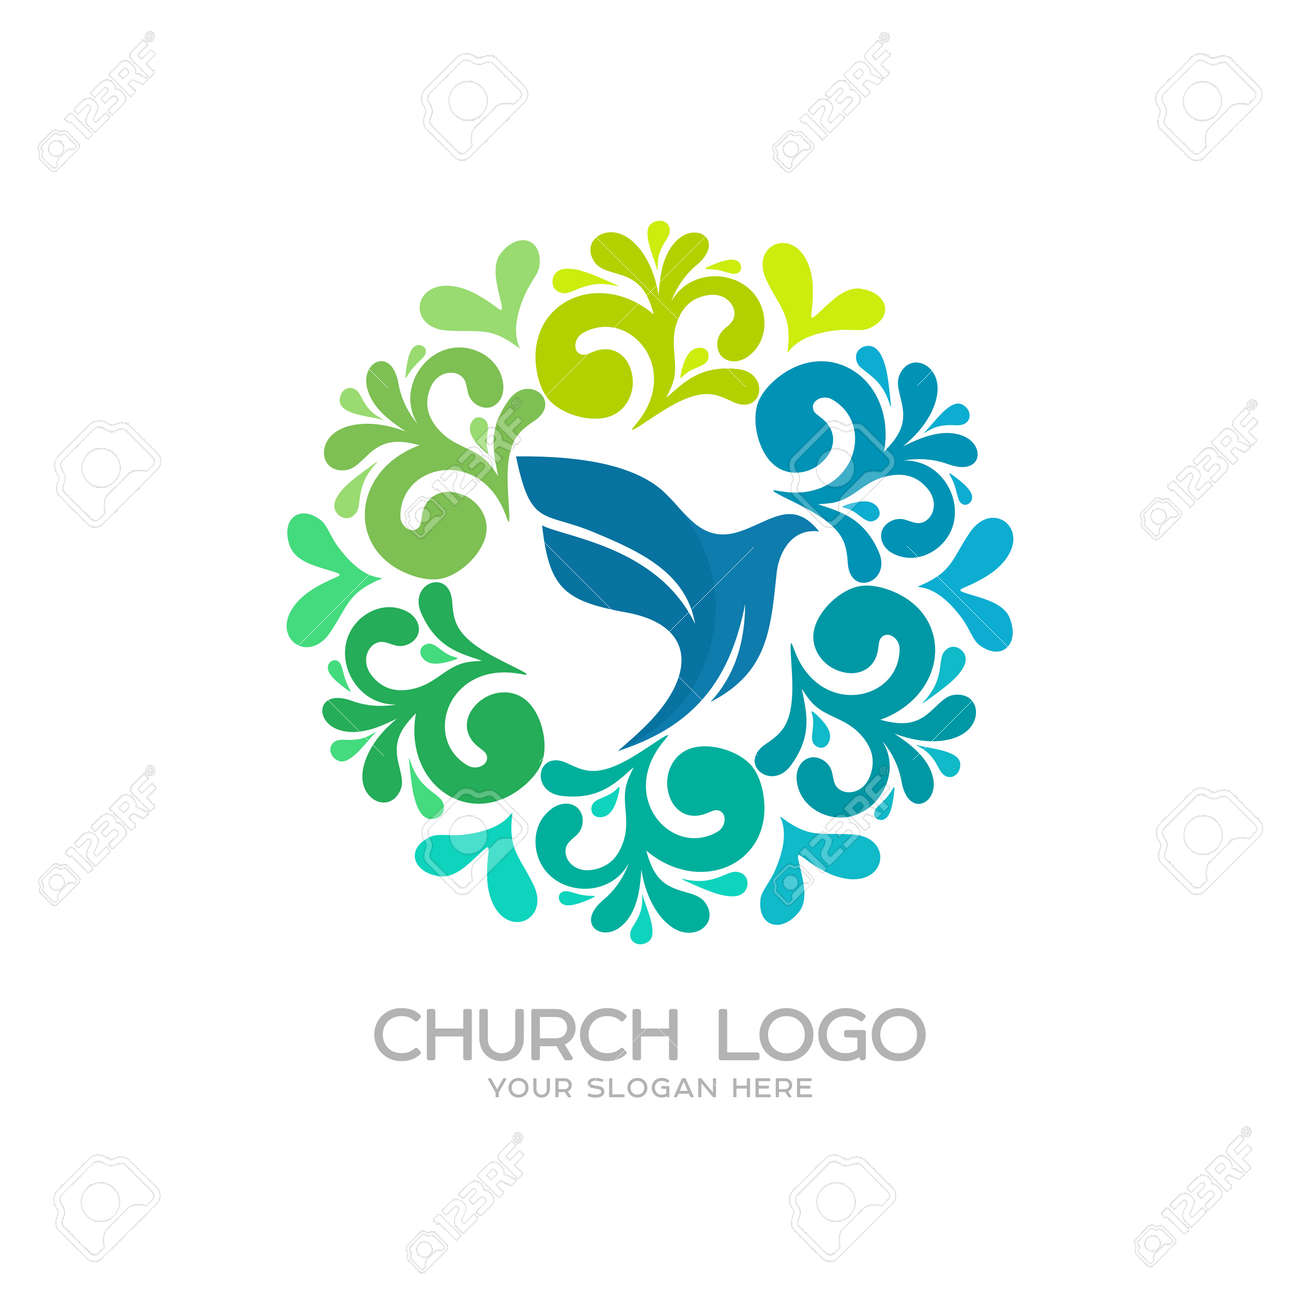 Church logo christian symbols dove the symbol of the holy church logo christian symbols dove the symbol of the holy spirit stock vector altavistaventures Choice Image